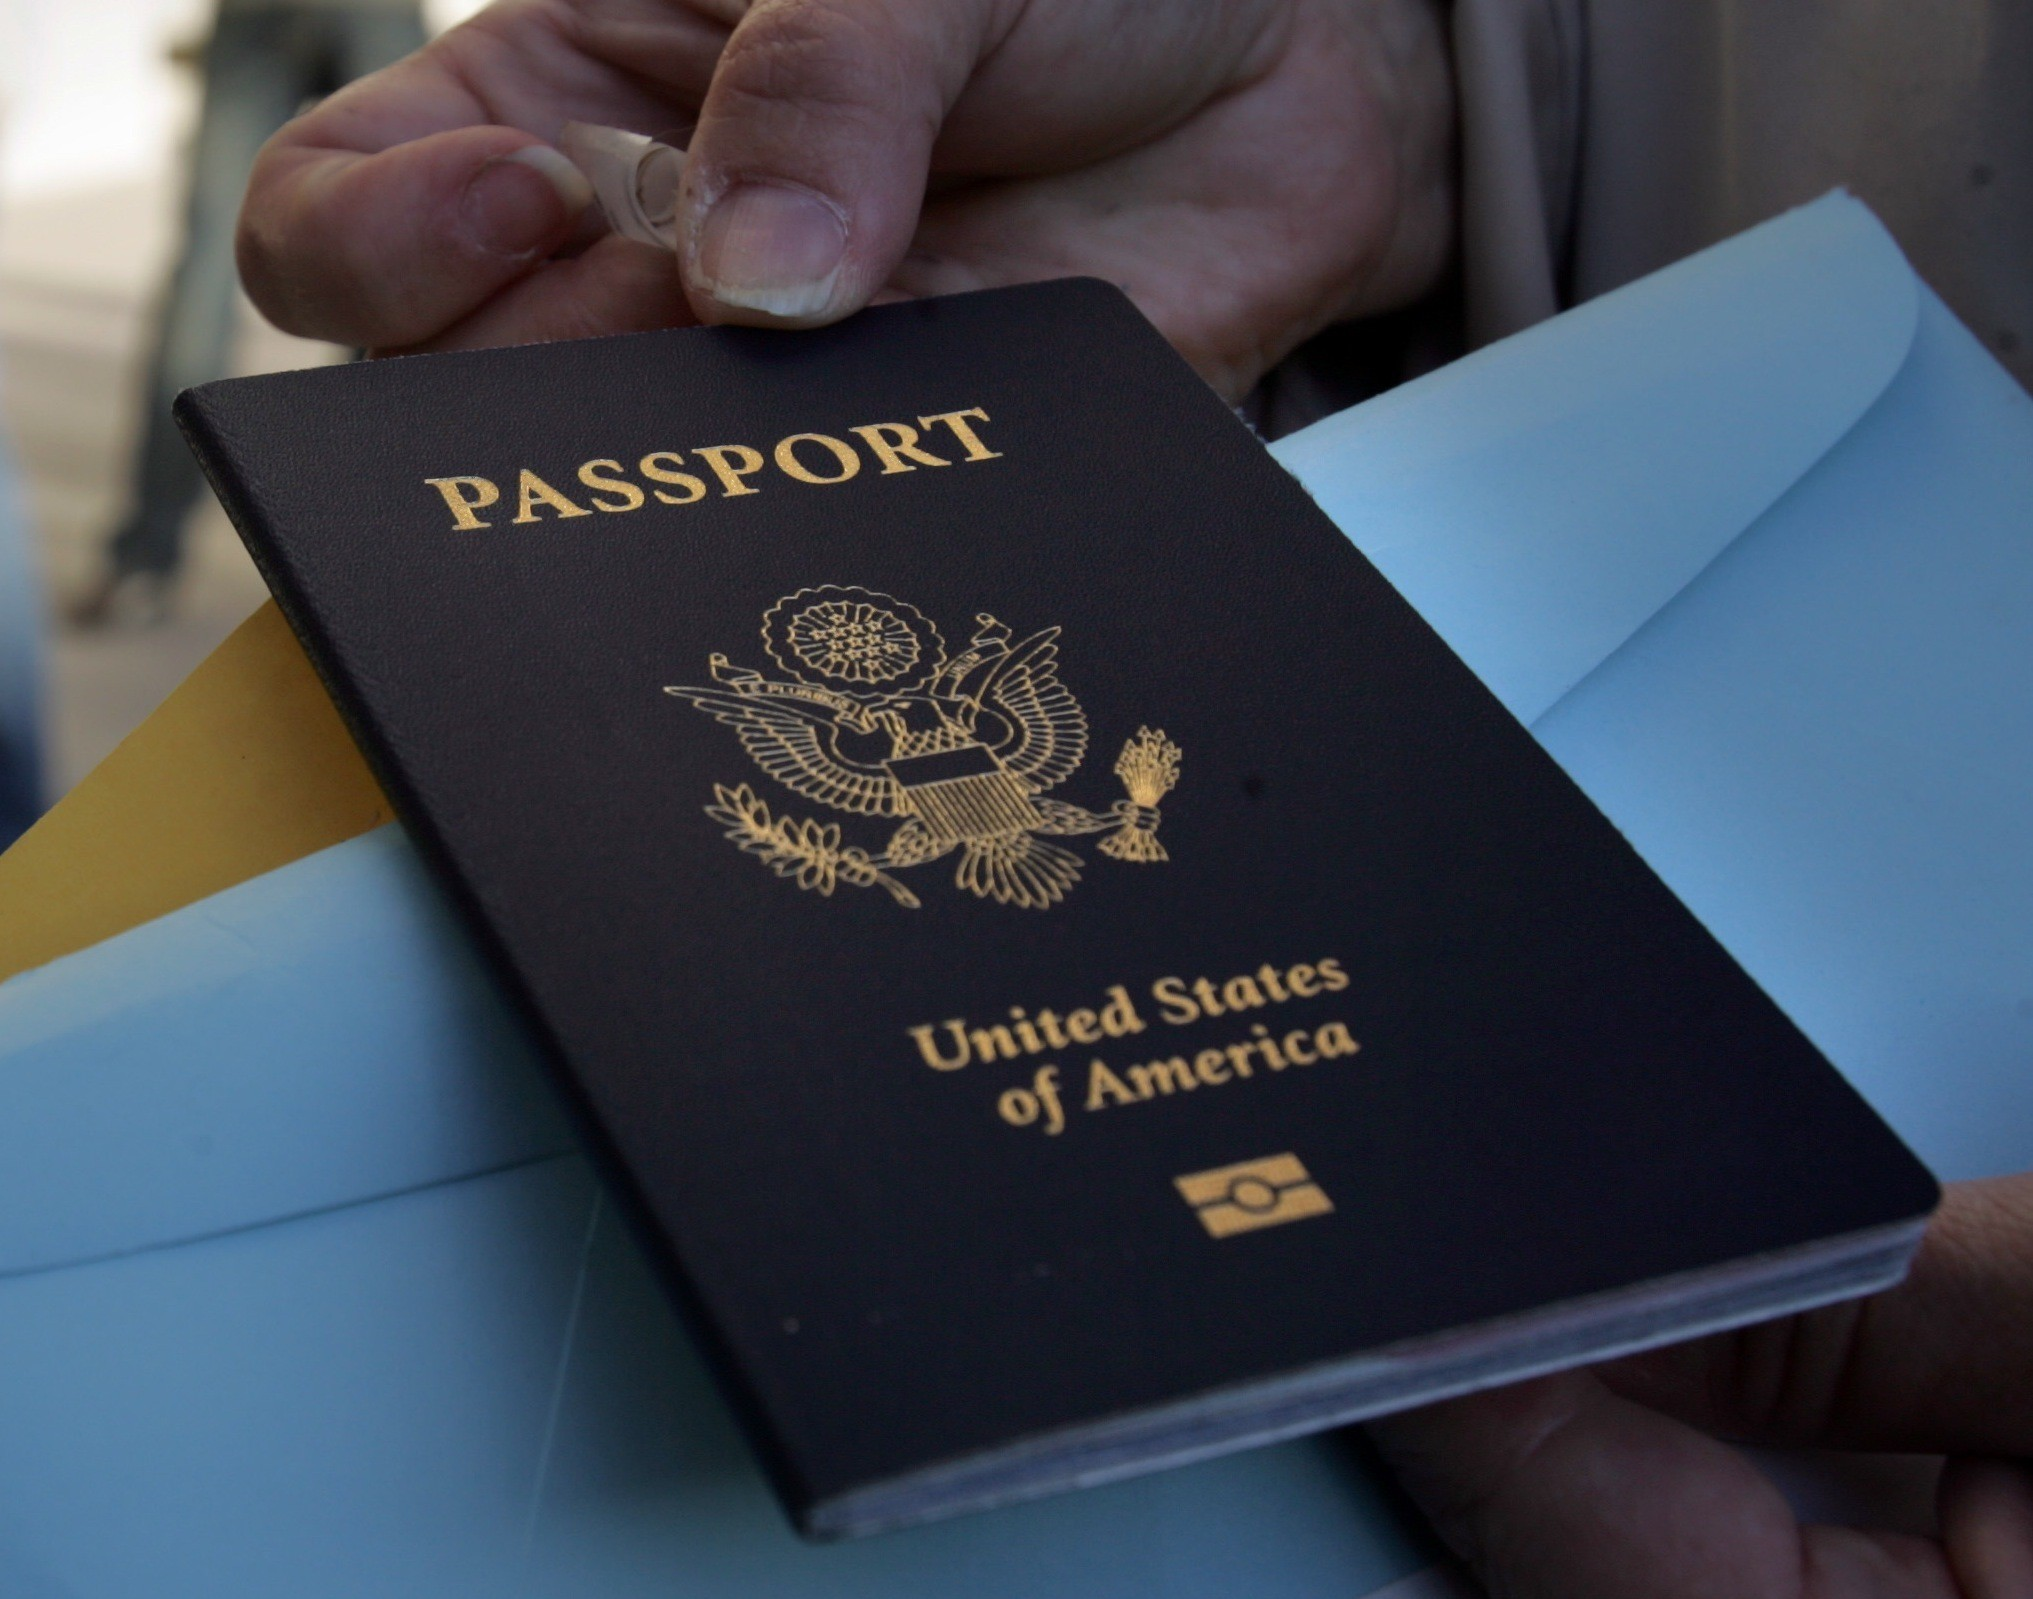 Buy real and fake | buy registered and unregistered, buy USA passport in New York, Chicago, Florida, buy UK passport, buy Netherland online, apply for passport online, buy database registered passports from digital novelty documents.